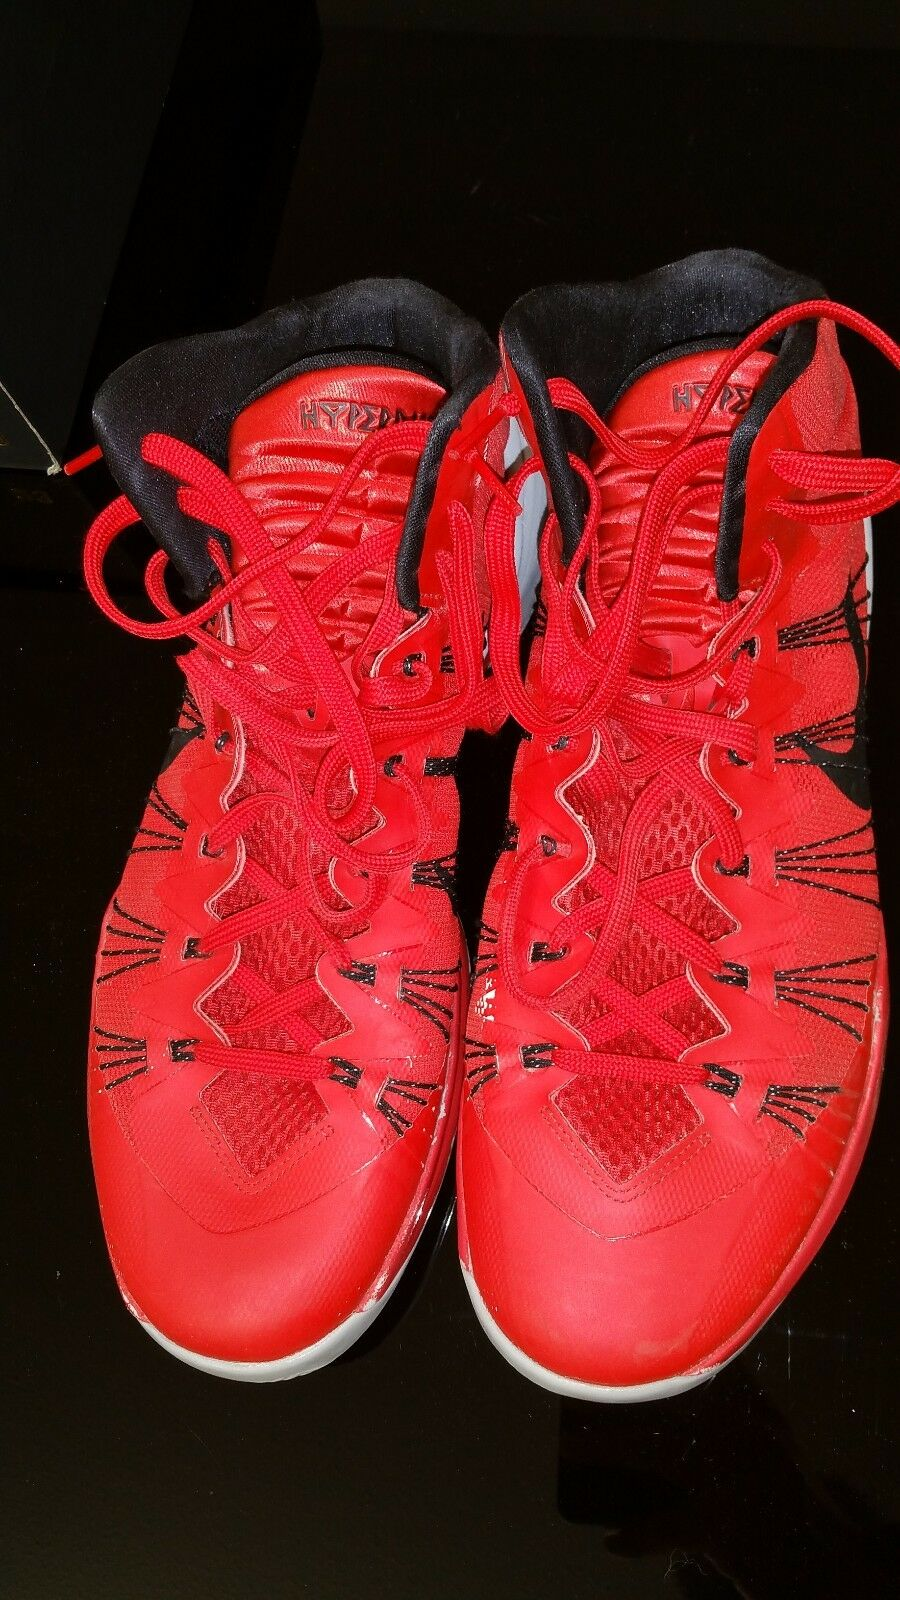 buy popular e45ae 080a6 Nike HYPERDUNK 2013 599537 600 University University University Red Black  Grey Basketball Shoes SZ 5210fe